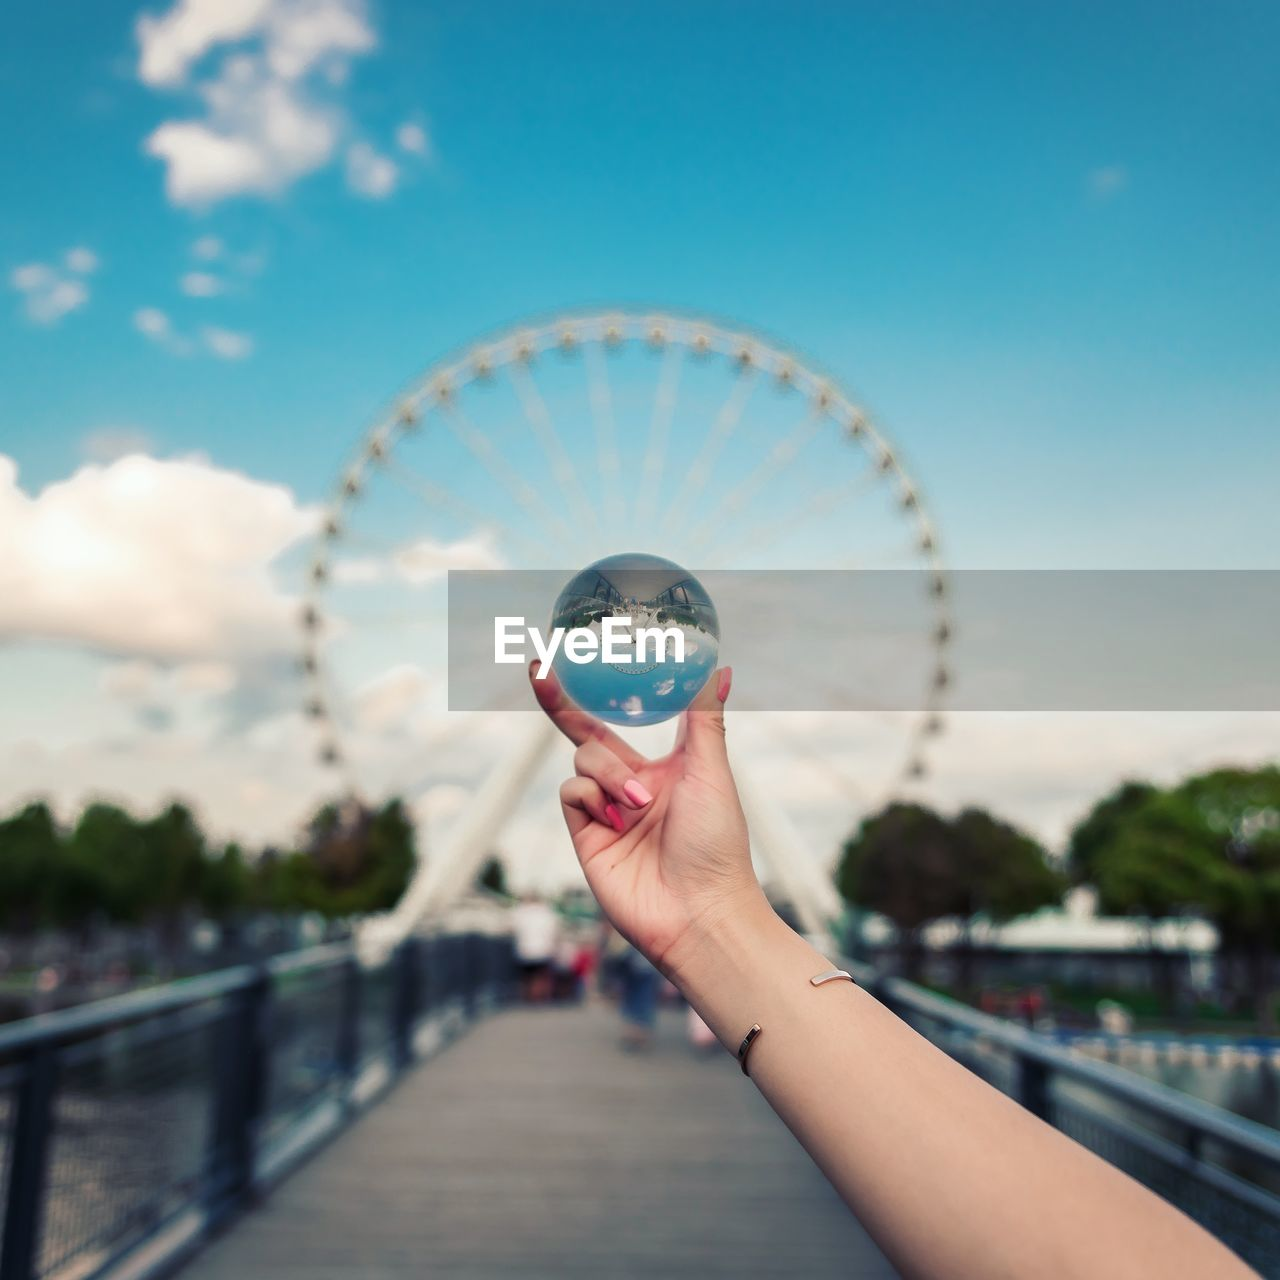 human hand, human body part, hand, real people, focus on foreground, built structure, ferris wheel, one person, leisure activity, sky, lifestyles, architecture, holding, nature, amusement park ride, day, unrecognizable person, city, body part, finger, outdoors, nail